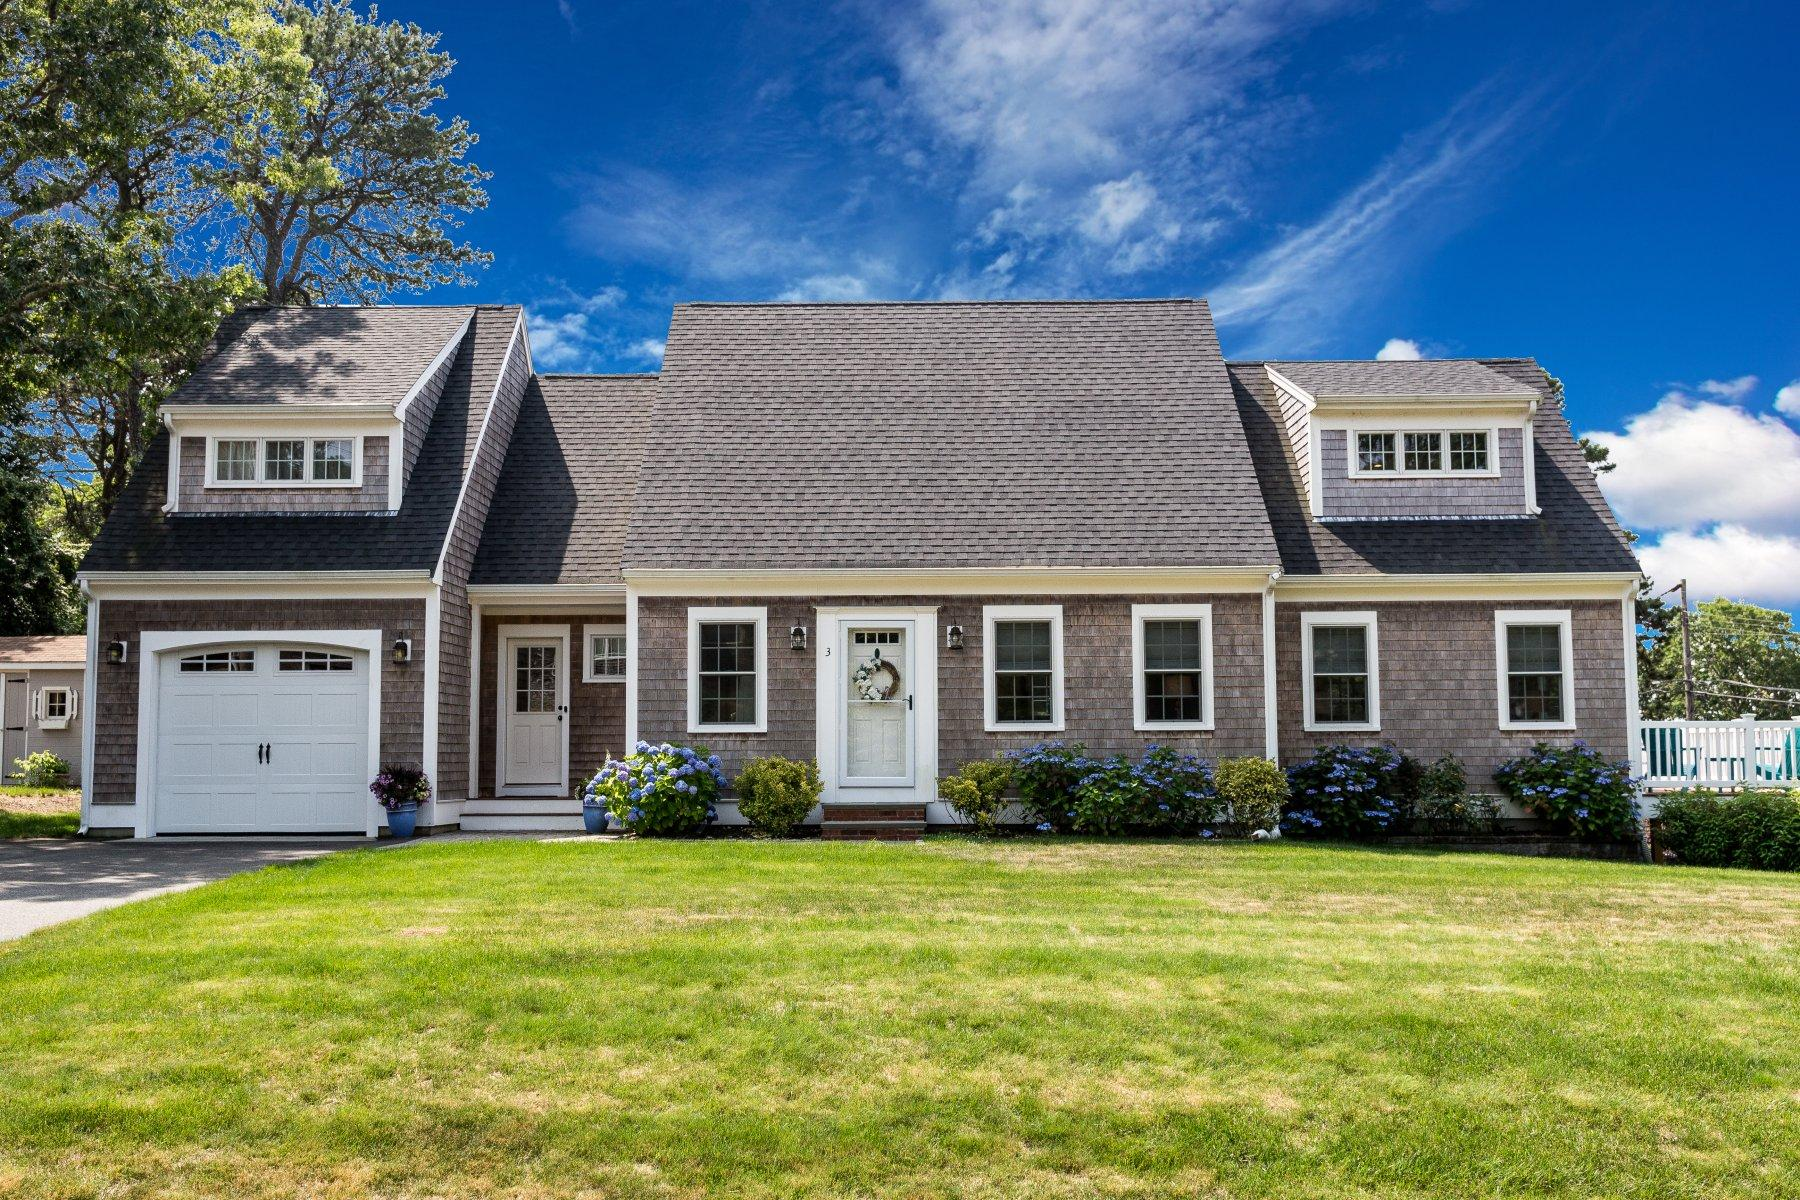 Single Family Homes for Active at 3 Captain Jack Road, Harwich, MA 3 Captain Jack Road Harwich, Massachusetts 02645 United States